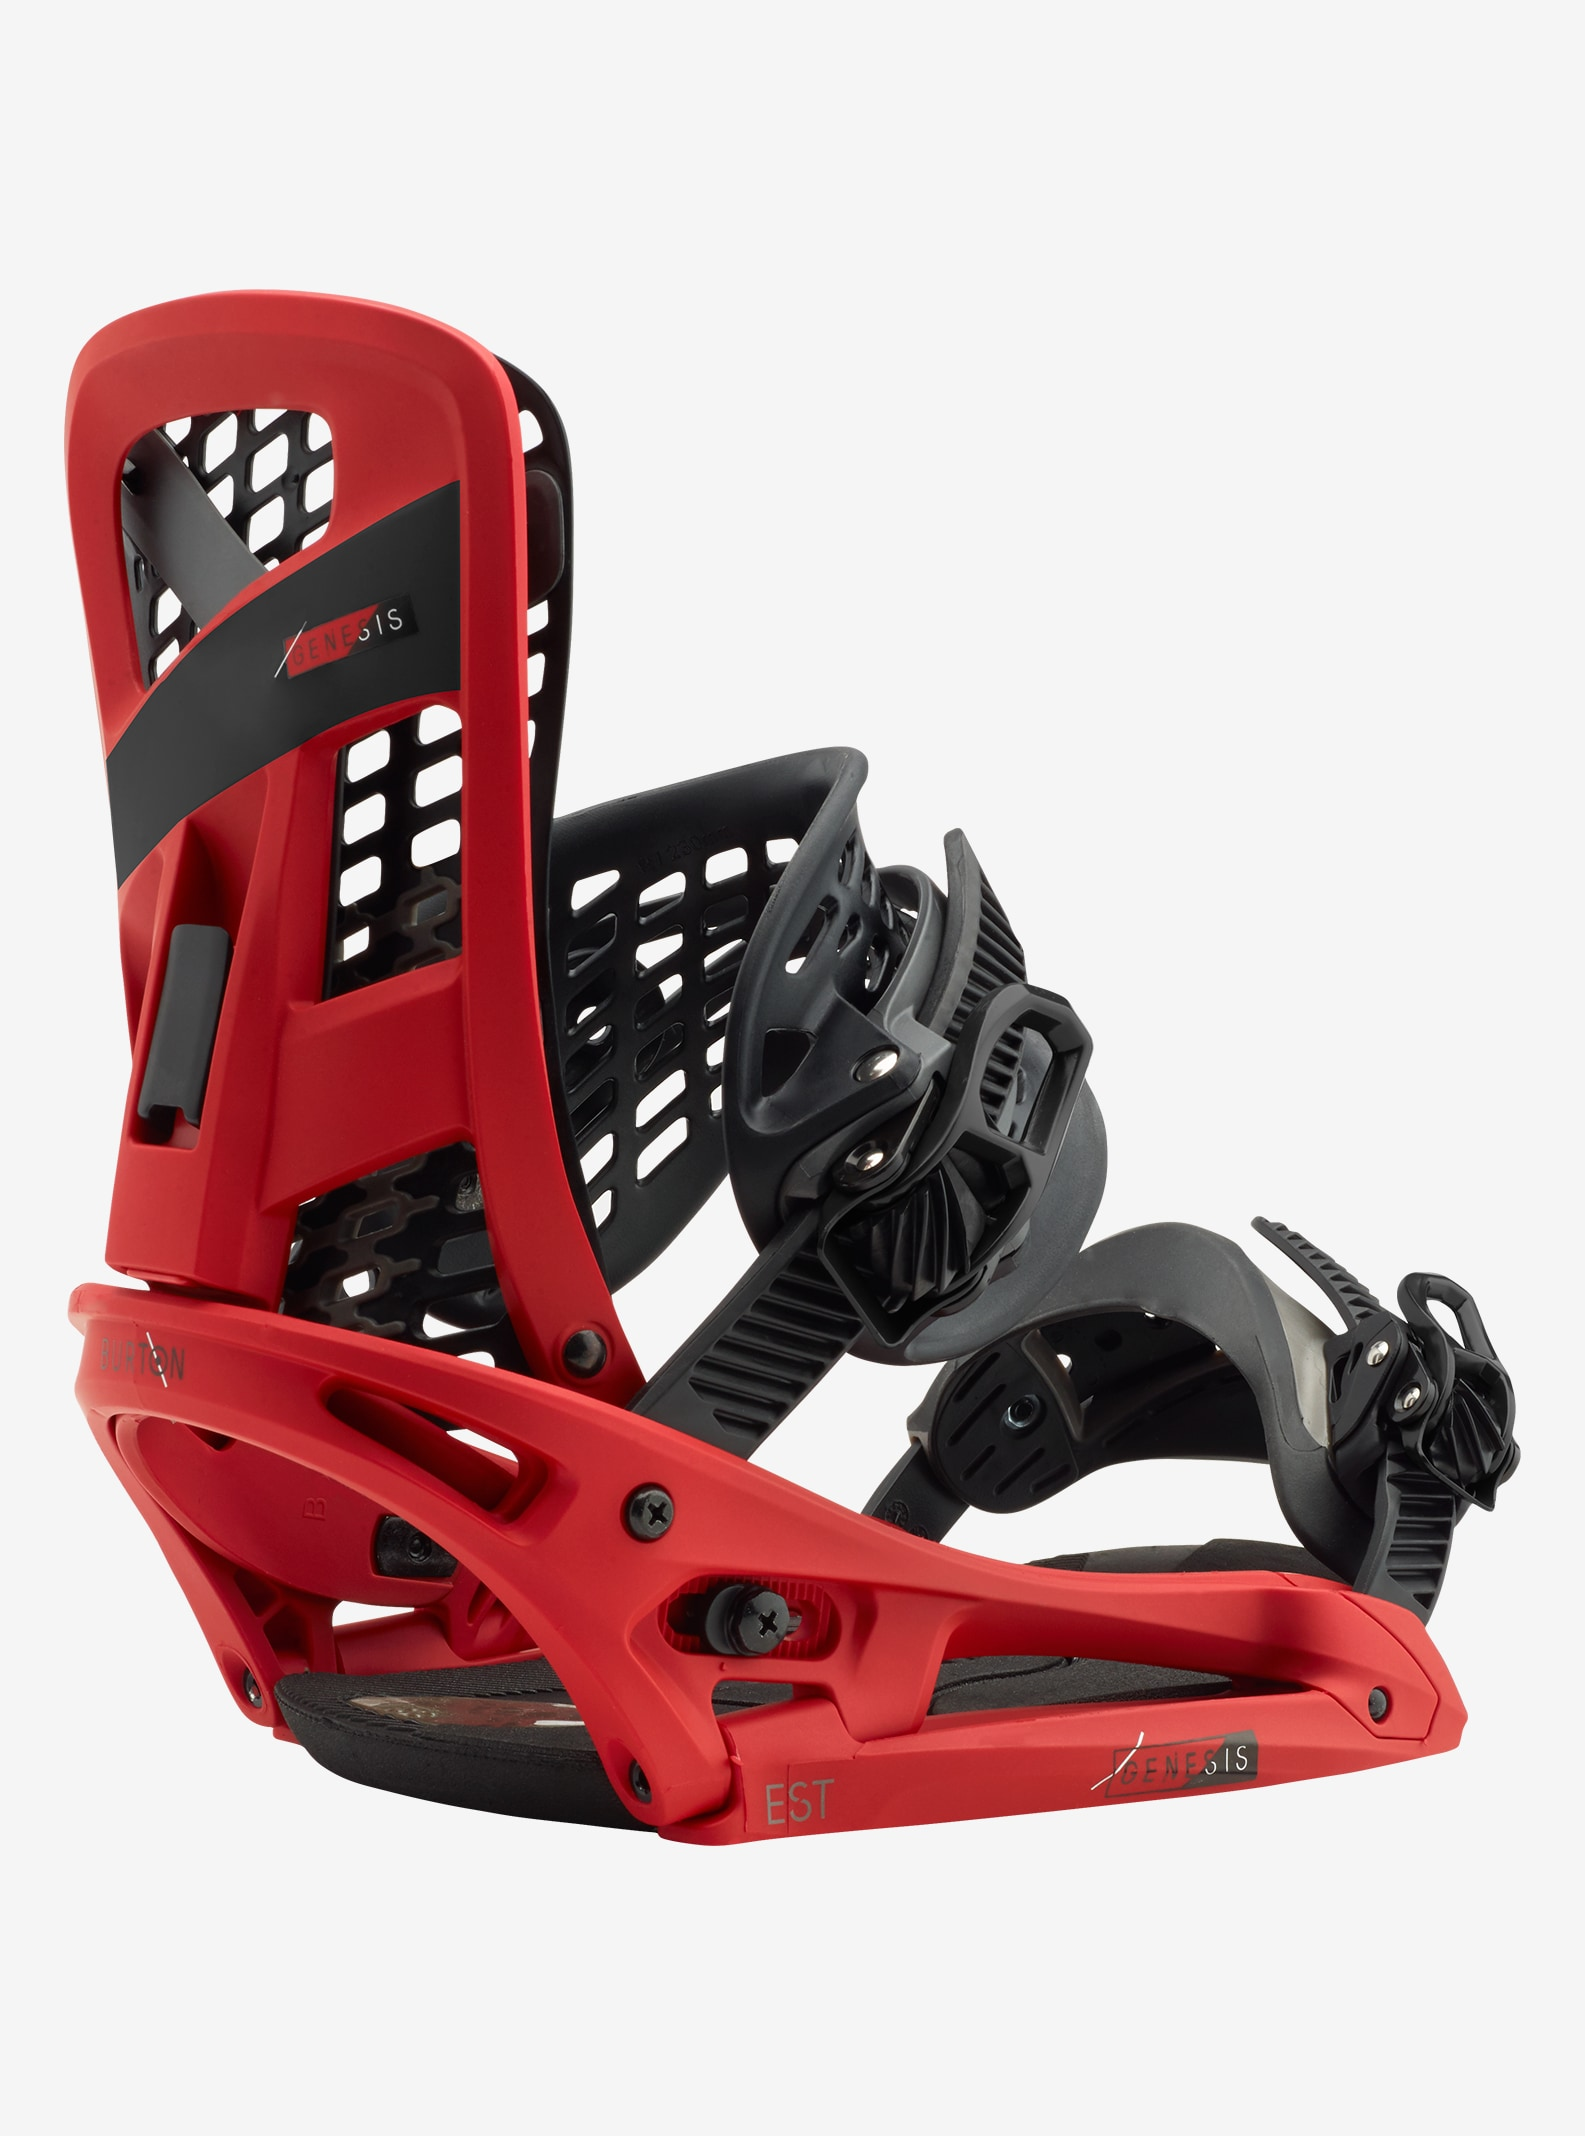 Men's Burton Genesis EST Snowboard Binding shown in Red Prophecy